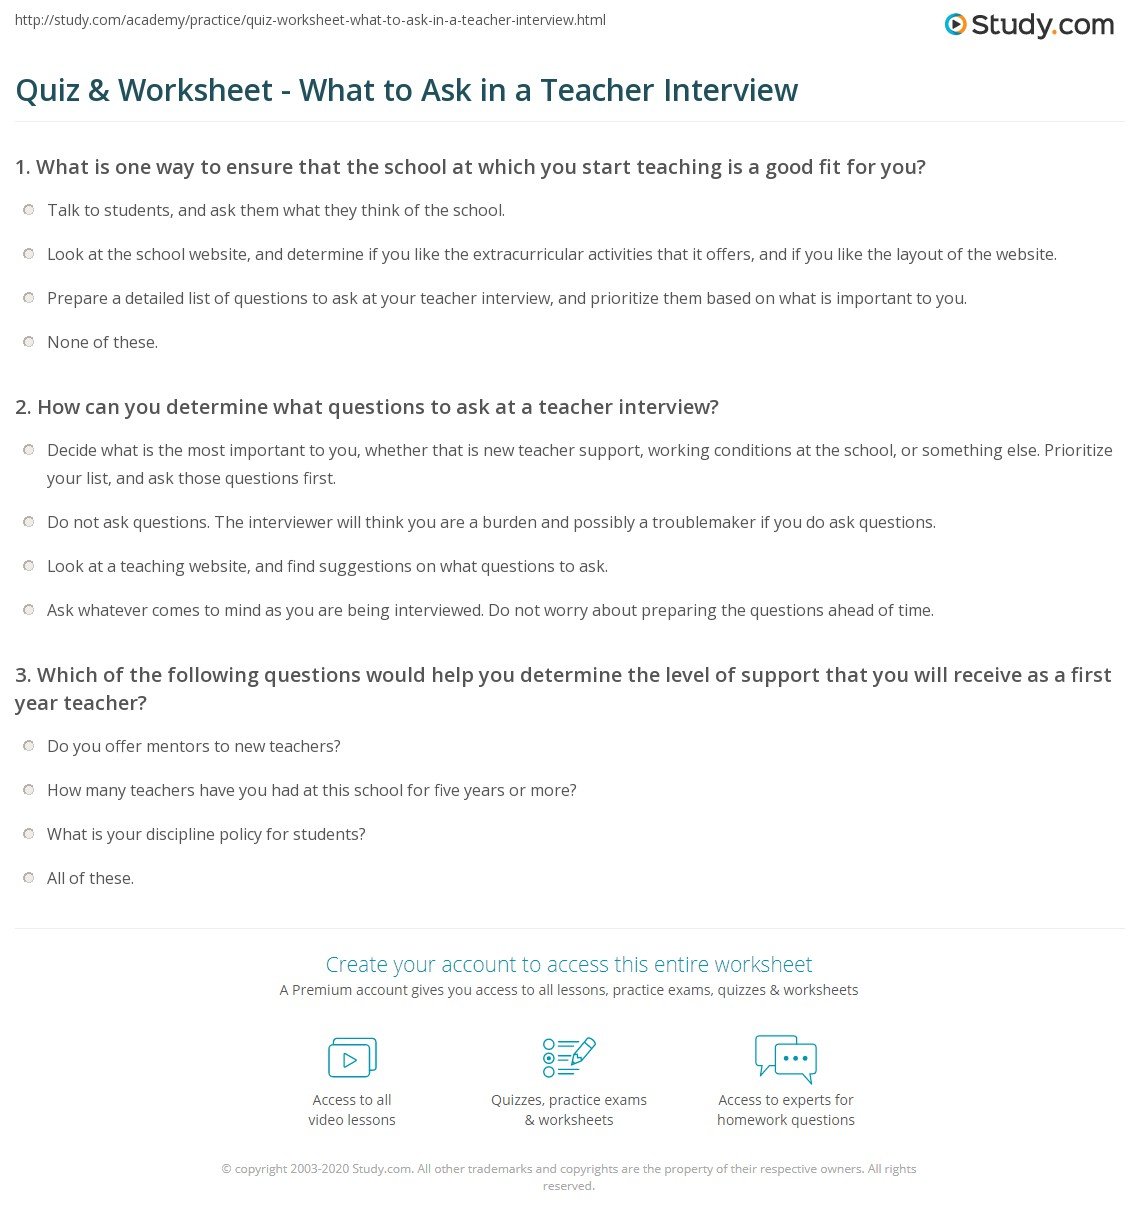 quiz worksheet what to ask in a teacher interview com how can you determine what questions to ask at a teacher interview